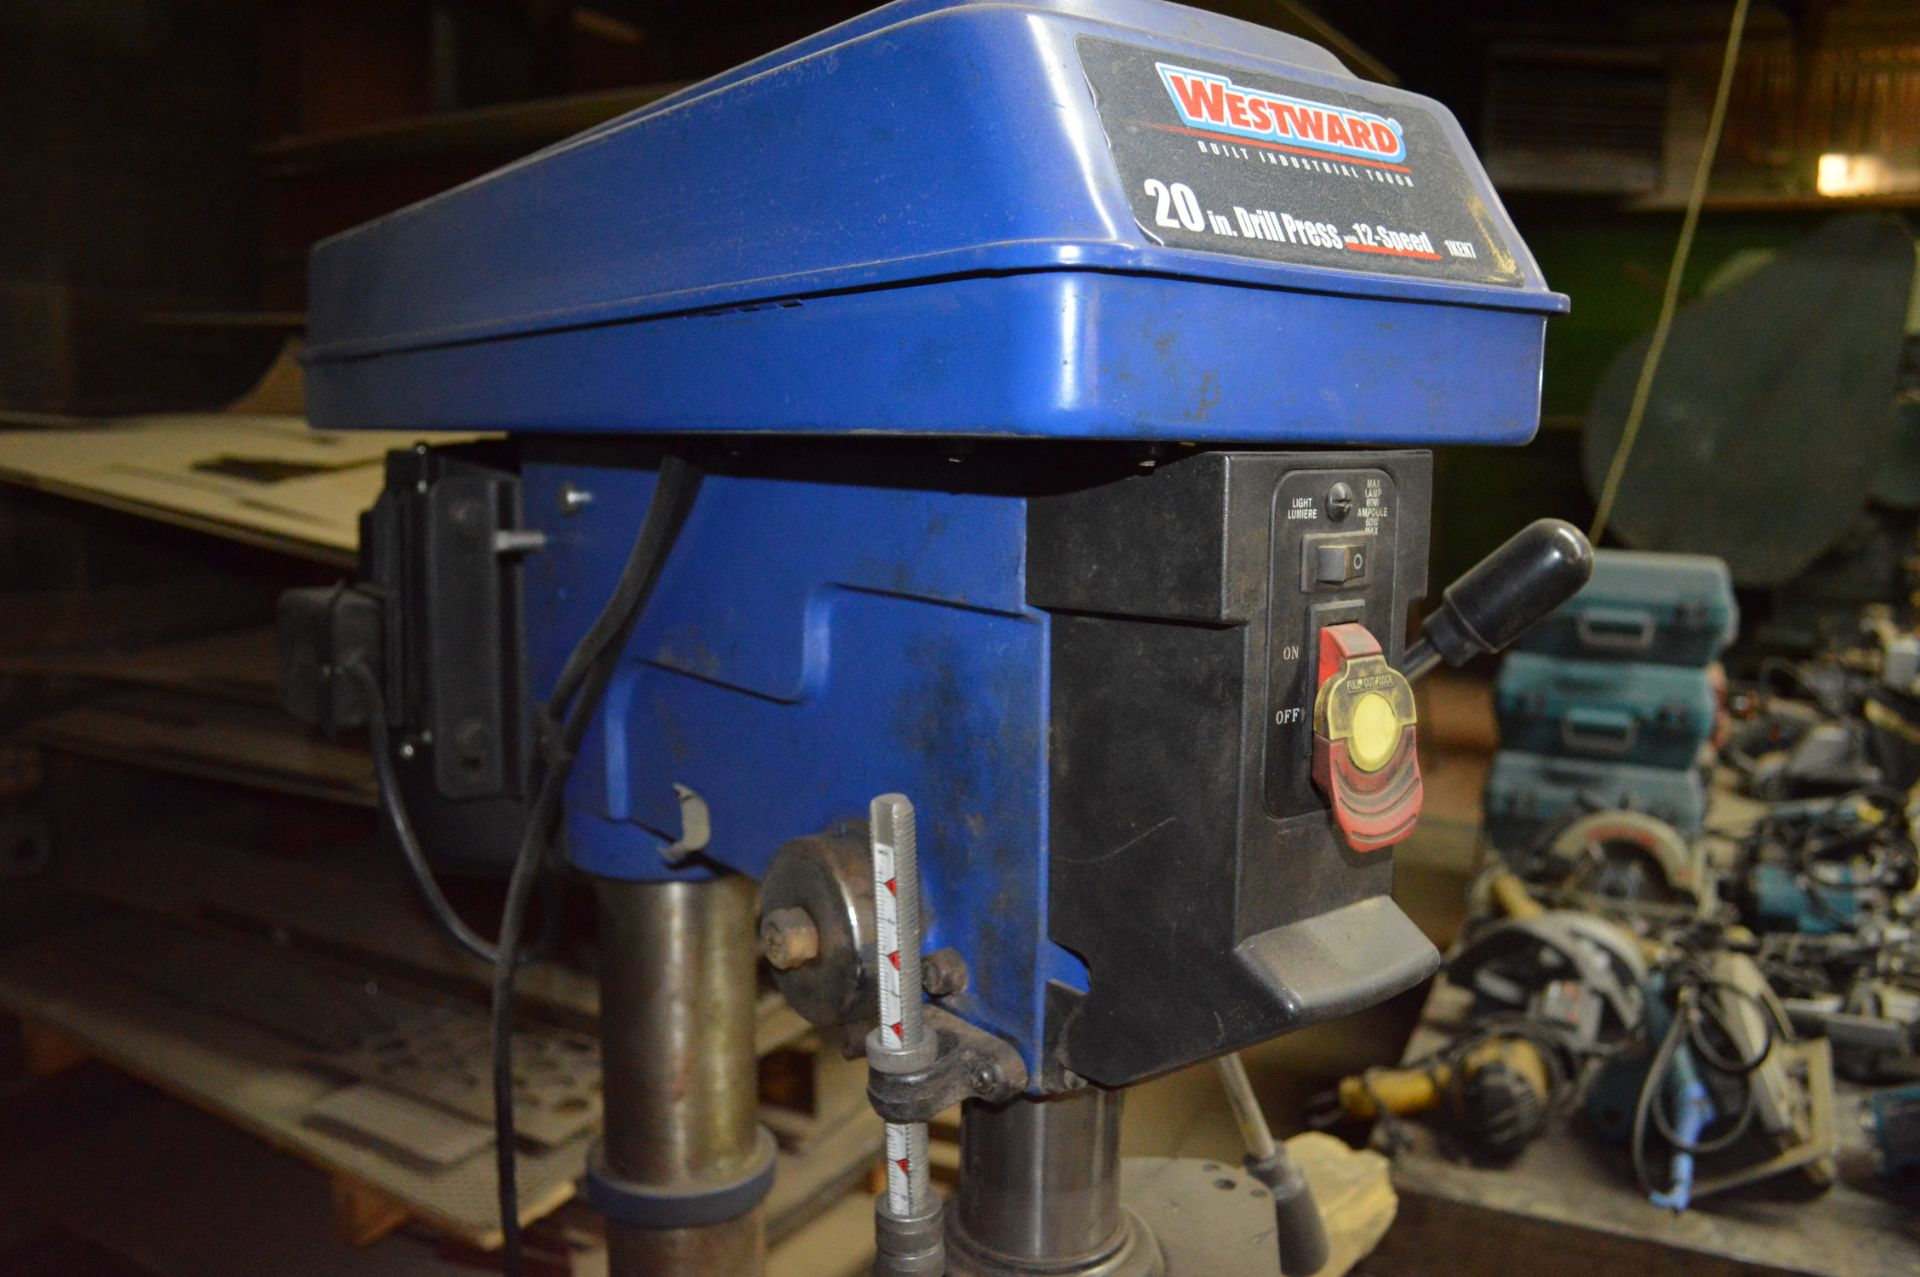 Lot 309 - WESTWOOD 20 INCH DRILL PRESS 12 SPEED WITH STAND